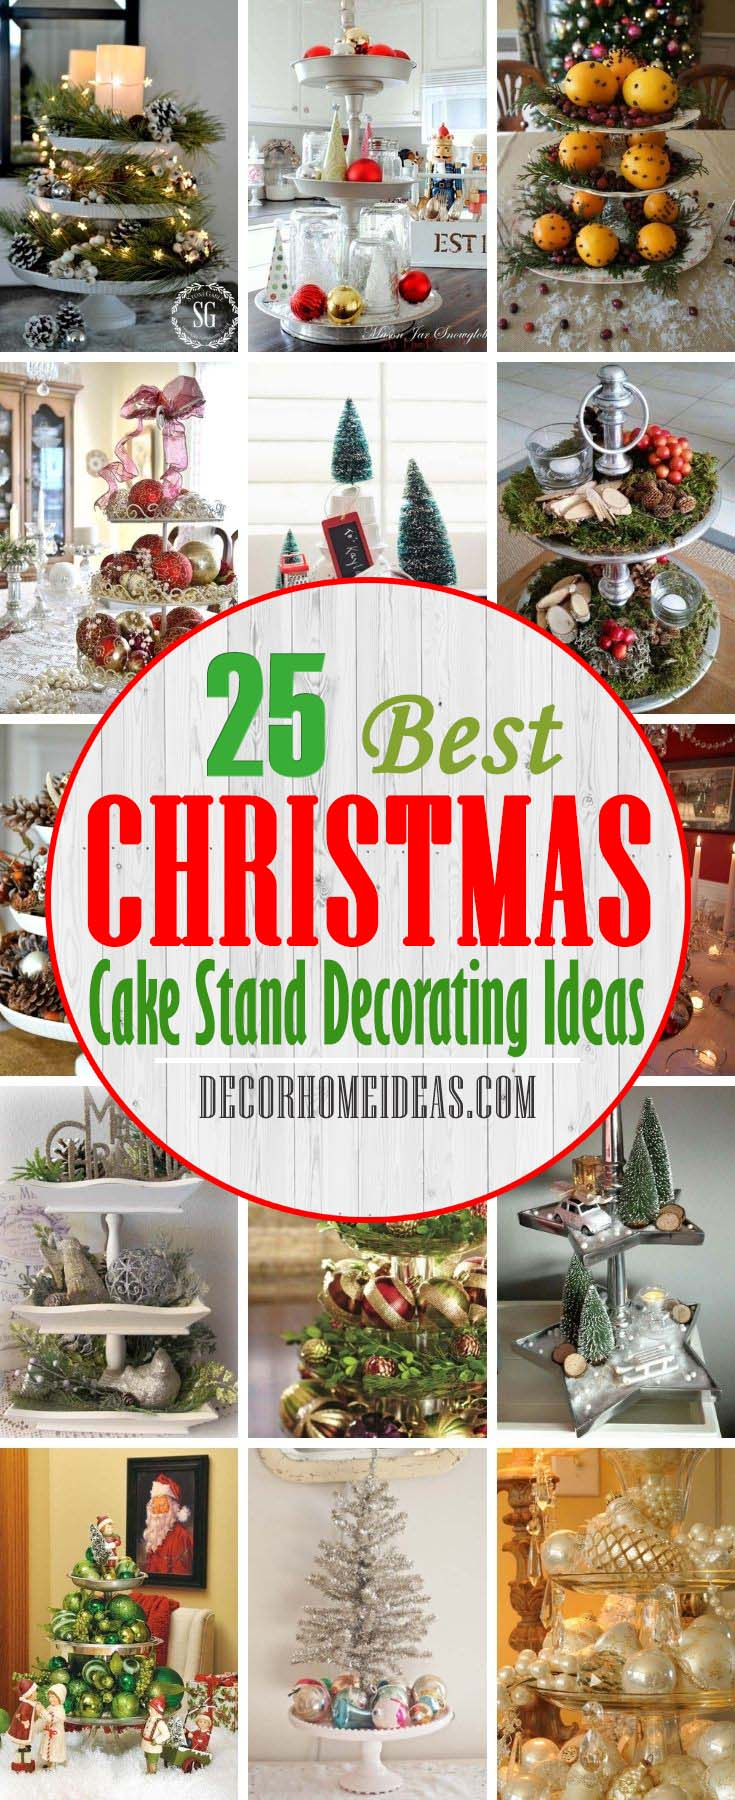 Best Christmas Cake Stand Decorating Ideas. One of the key attractions of the Christmas celebrations is the cake and their embellishments. To make your Christmas cake look amazing, following Christmas cake stand designs can be attempted. #decorhomeideas